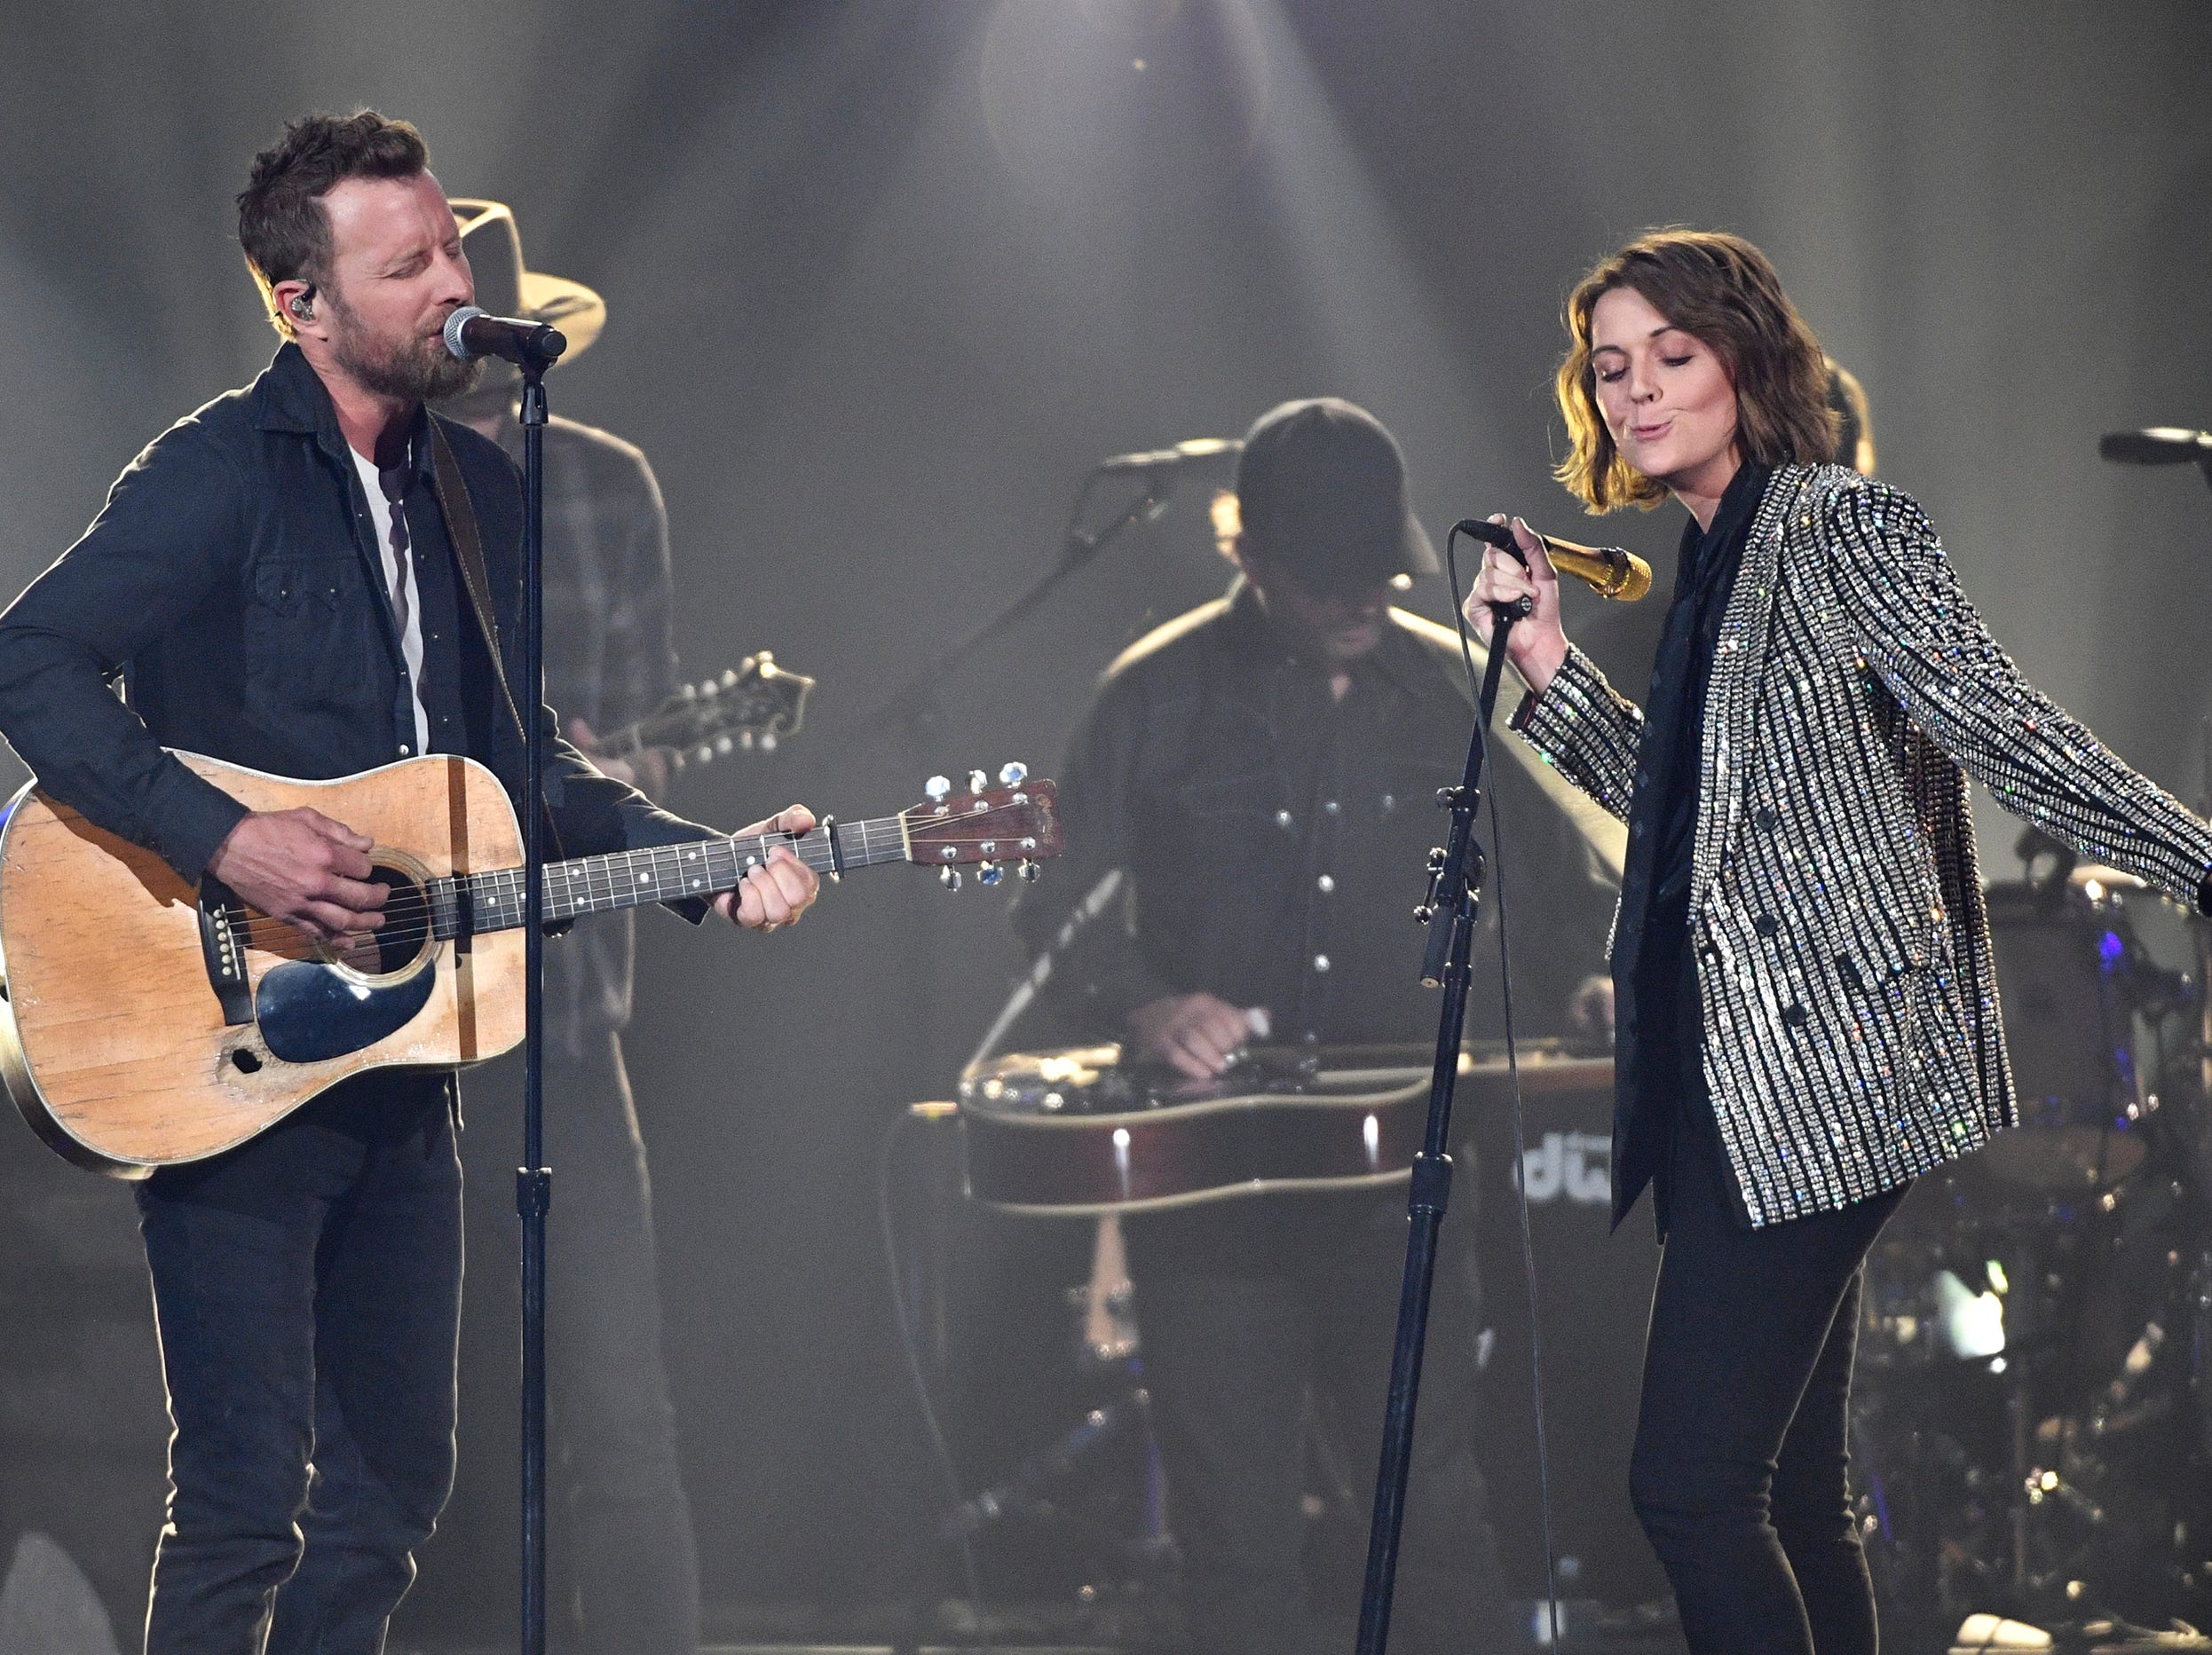 Dierks Bentley, left, and Brandi Carlile, perform during the 54TH Academy of Country Music Awards Sunday, April 7, 2019, in Las Vegas, Nev.